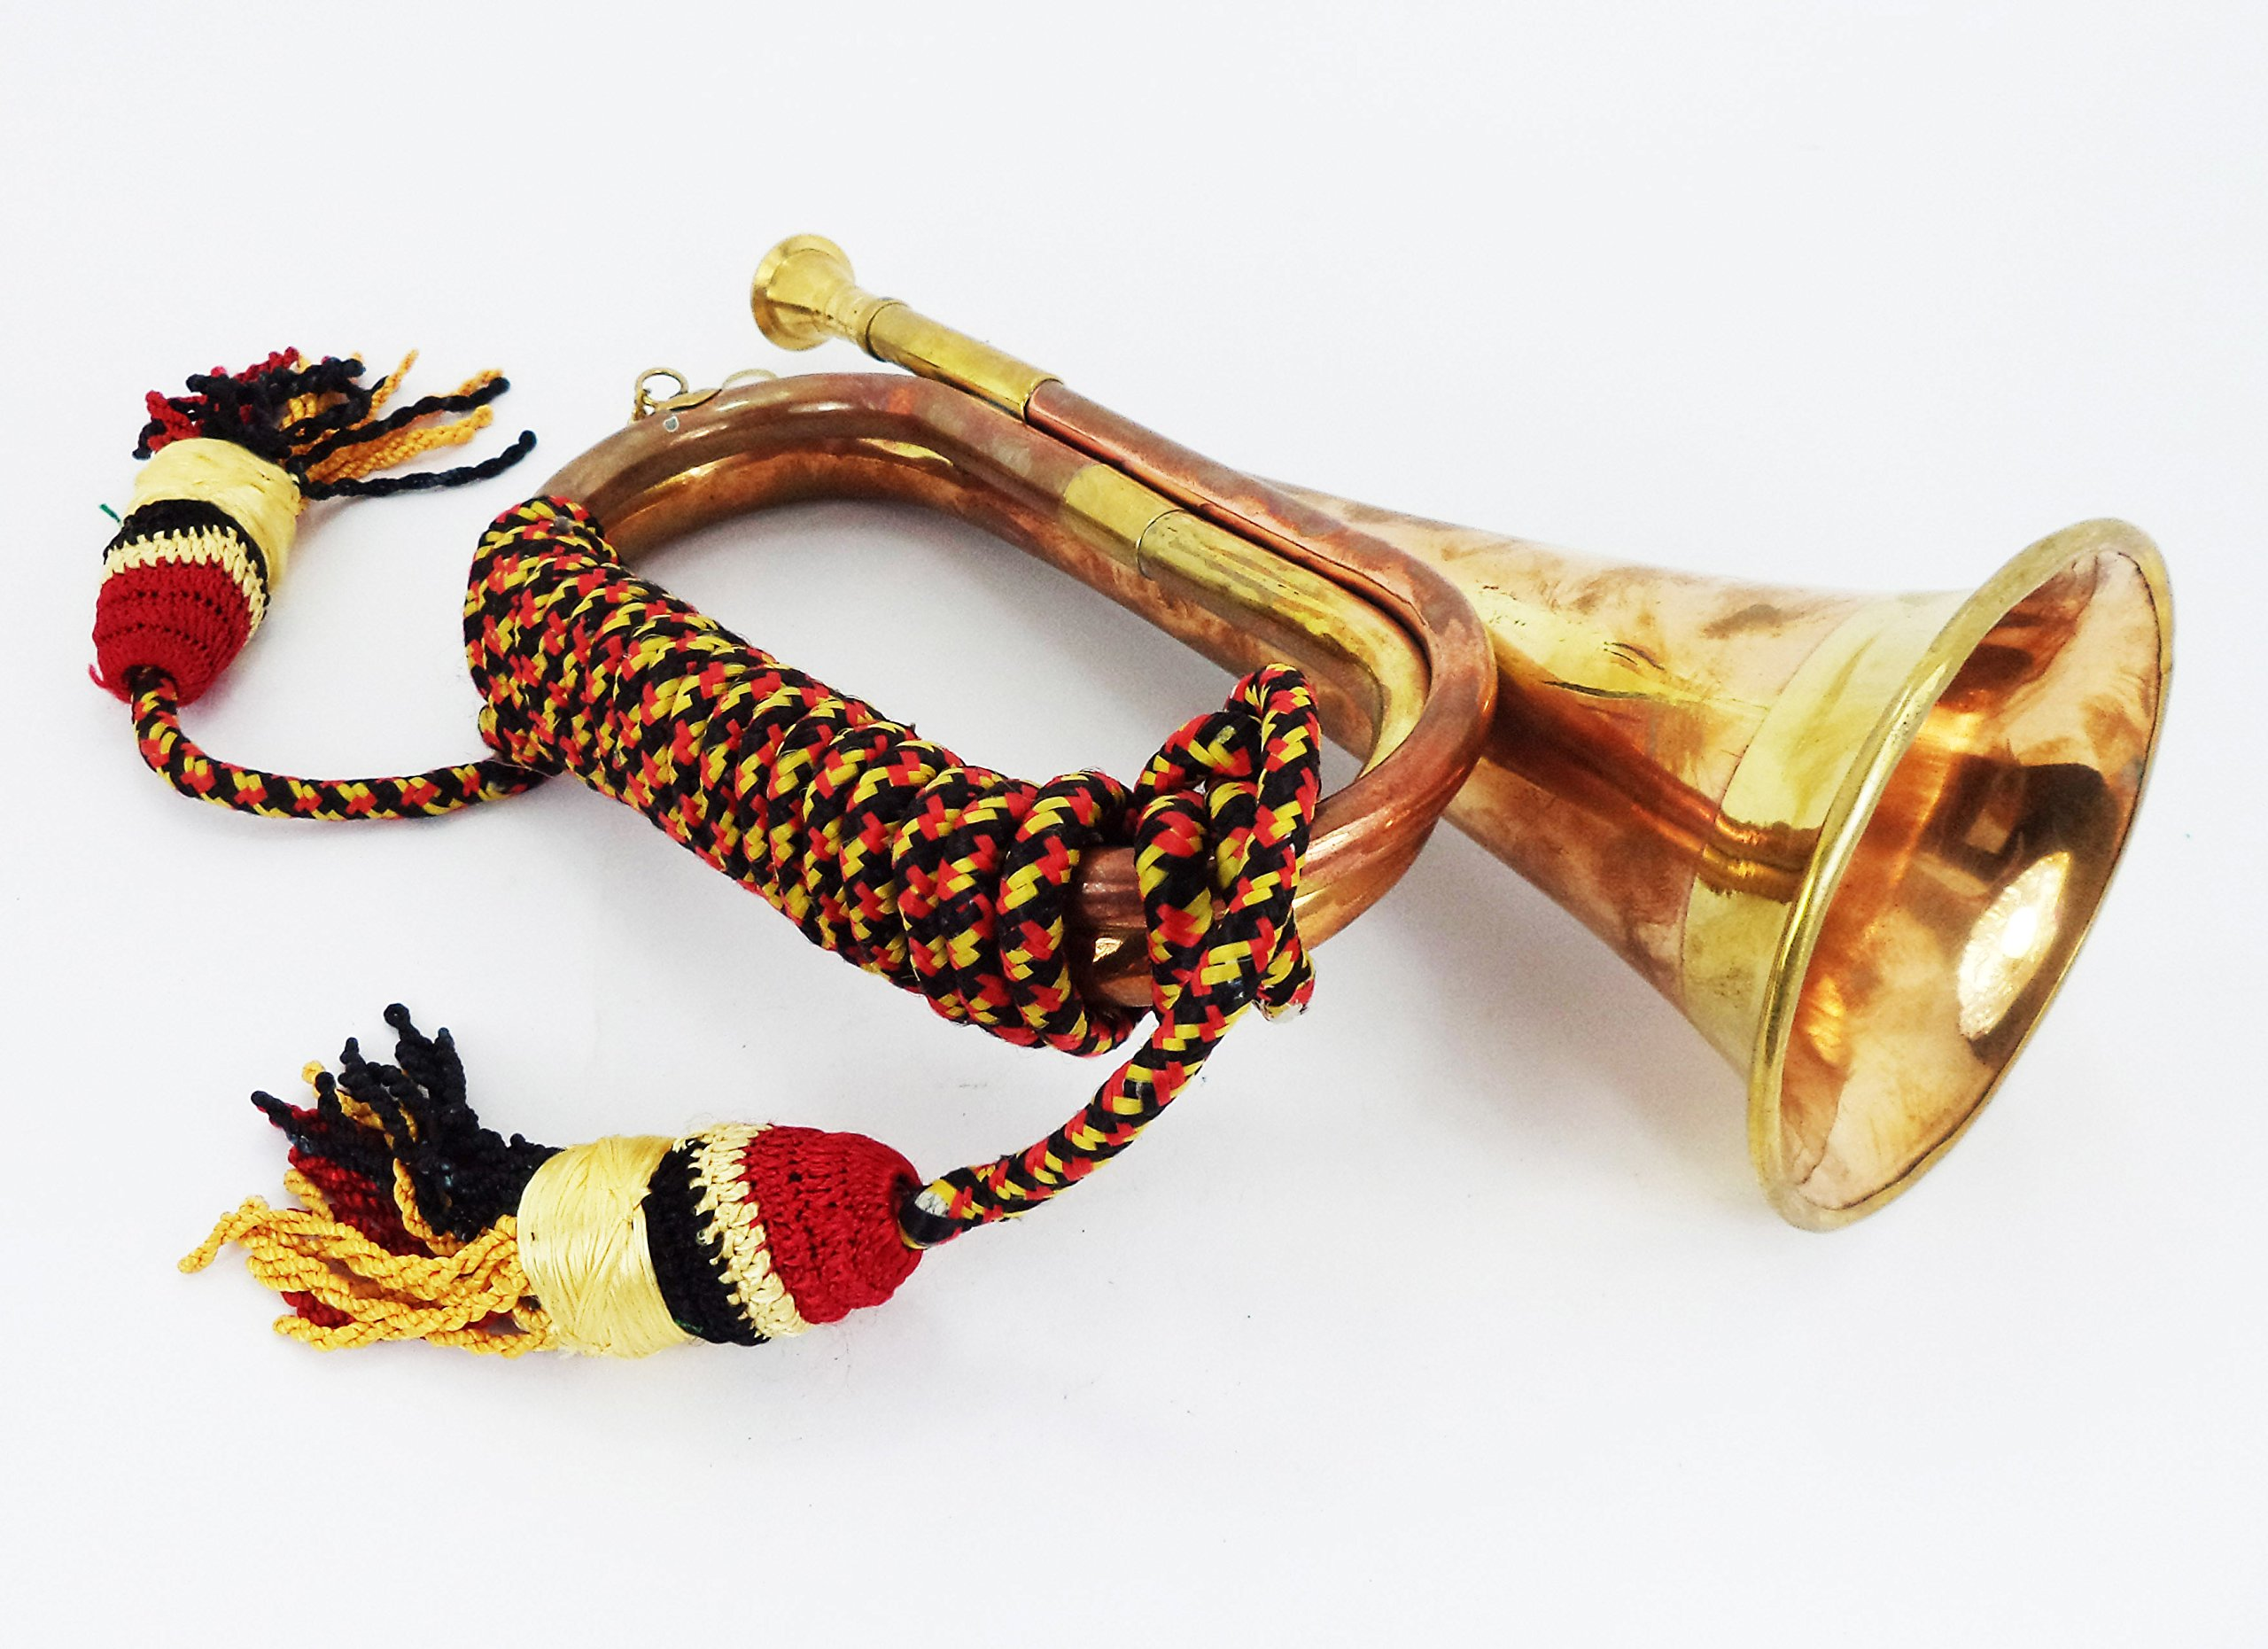 Boy Scout Brass and Copper Blowing Bugle Attack War Command Signal Horn 10.6'' Inch with Beautiful Colourful Rope Binding